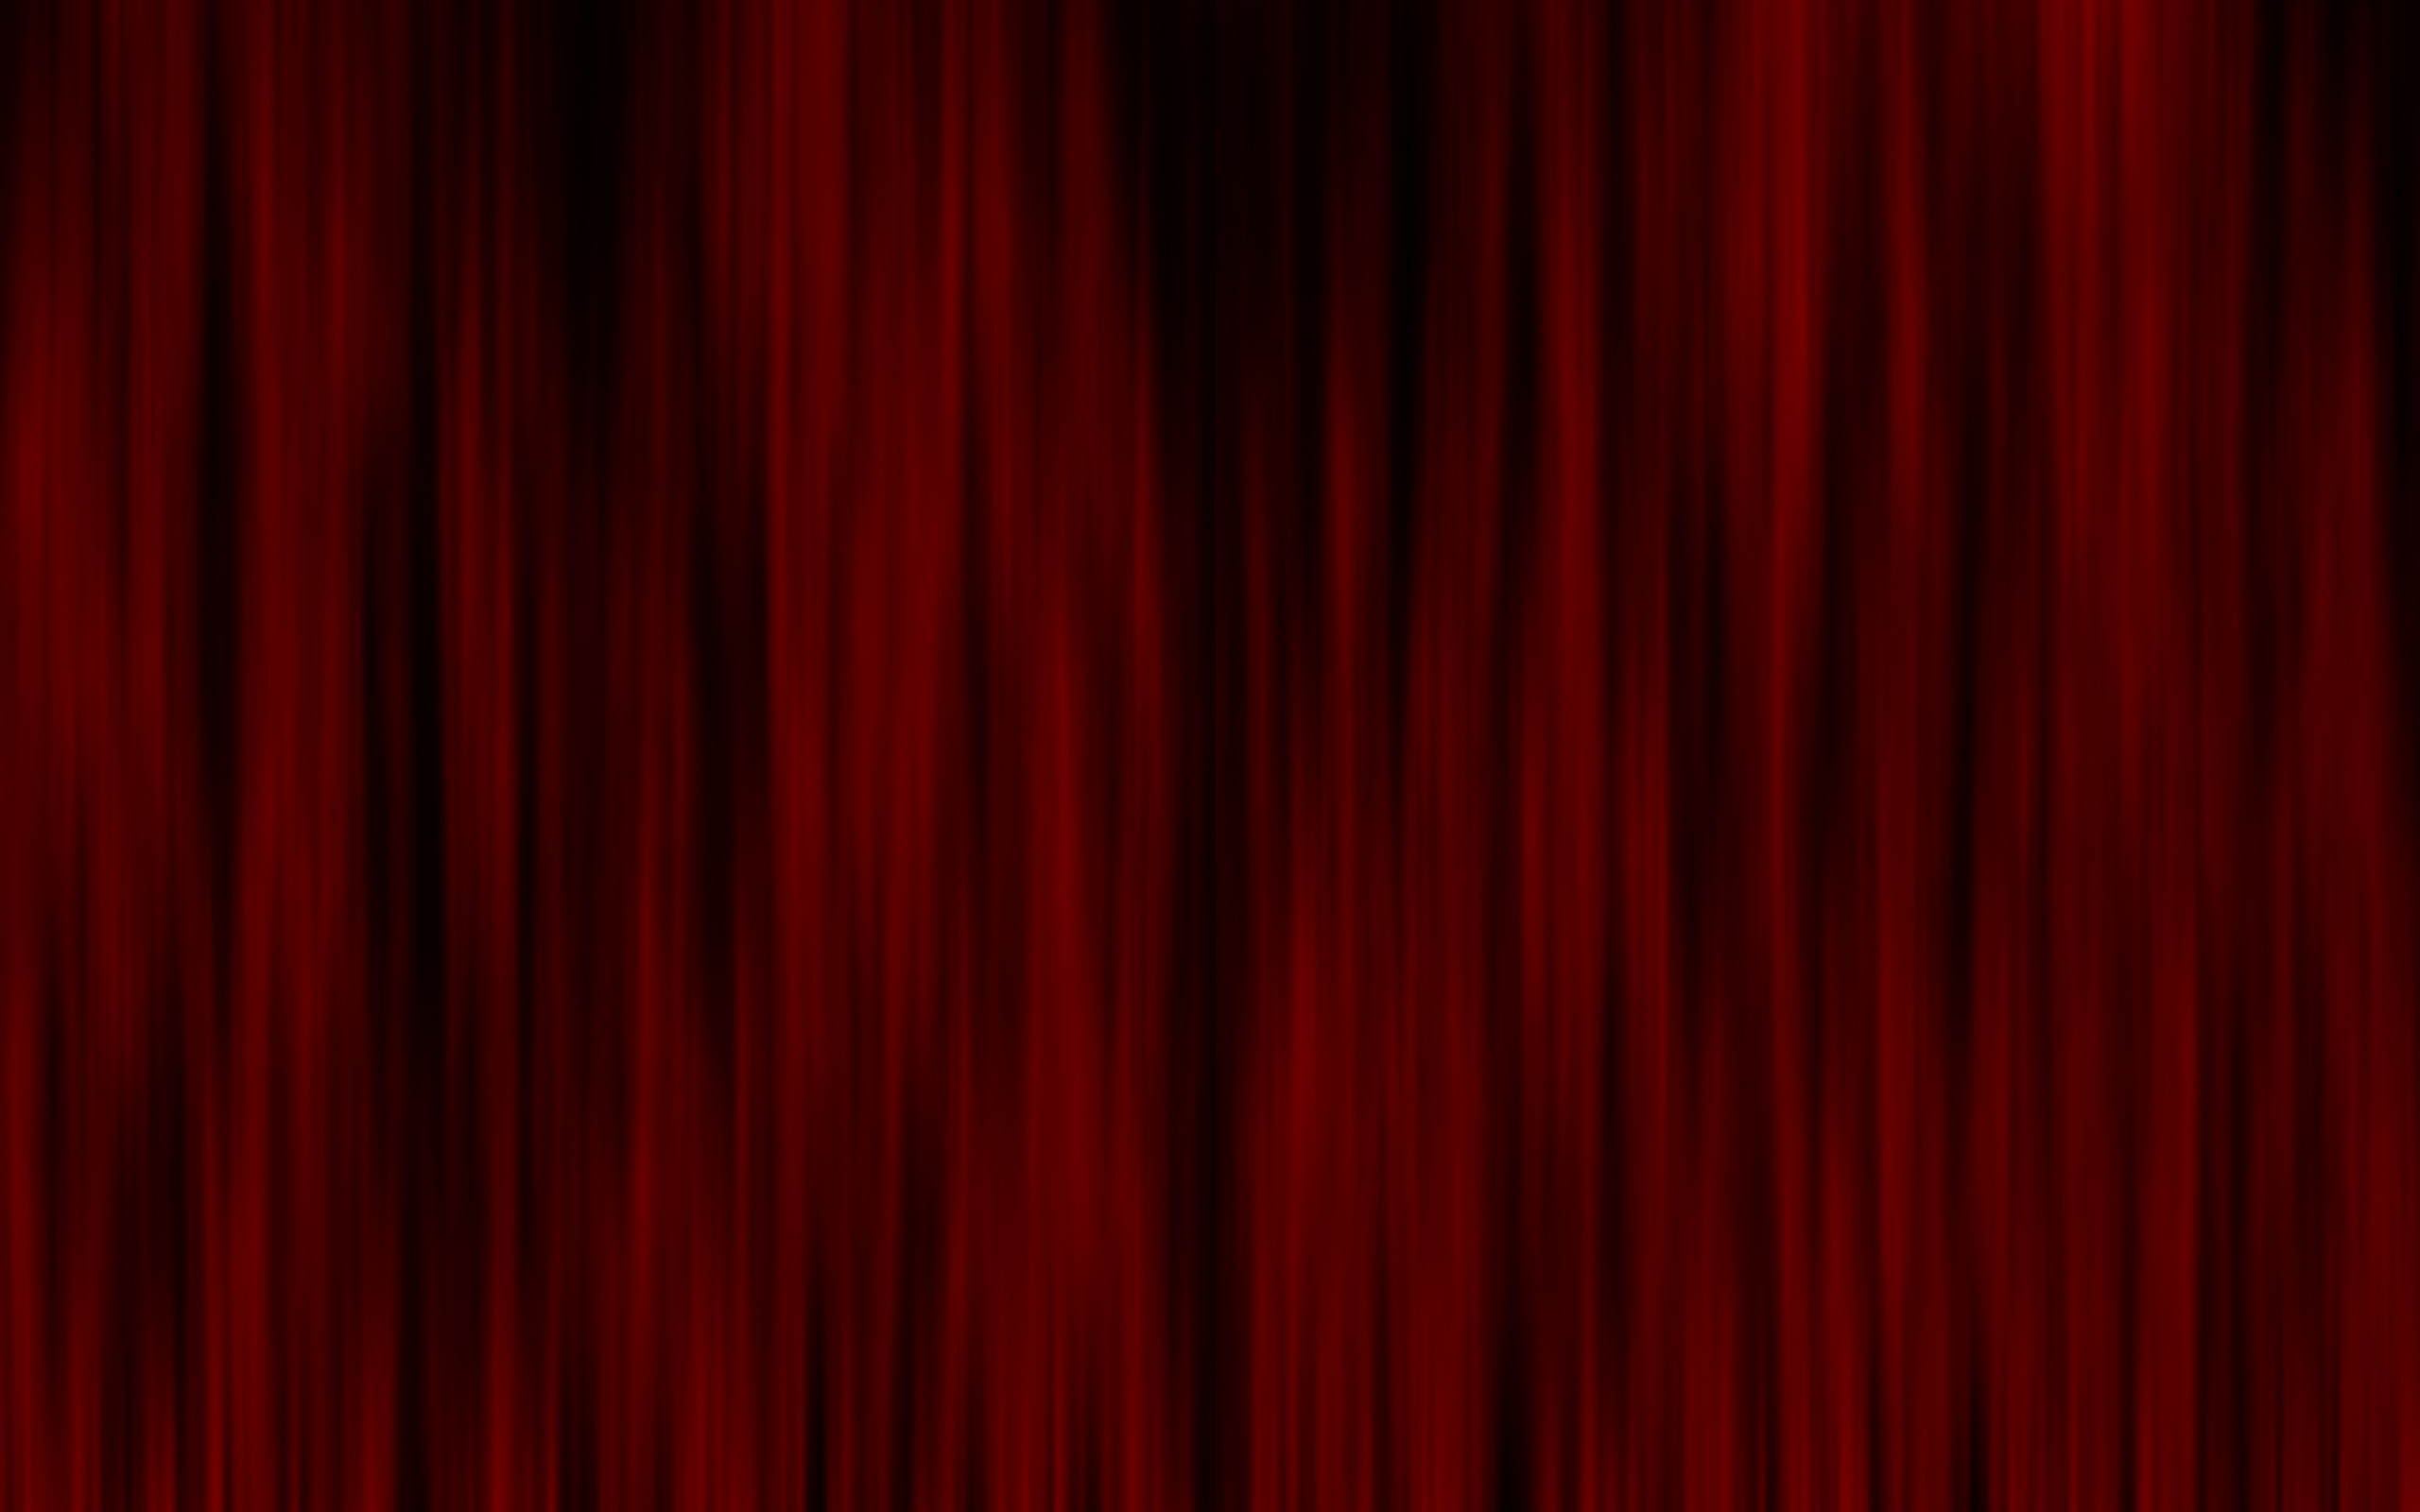 Black theatre curtain - Red Curtains Wallpaper 2560x1600 Red Curtains Theatre Scenario Wallpaper 219 Curtain Red And Black Wallpapers